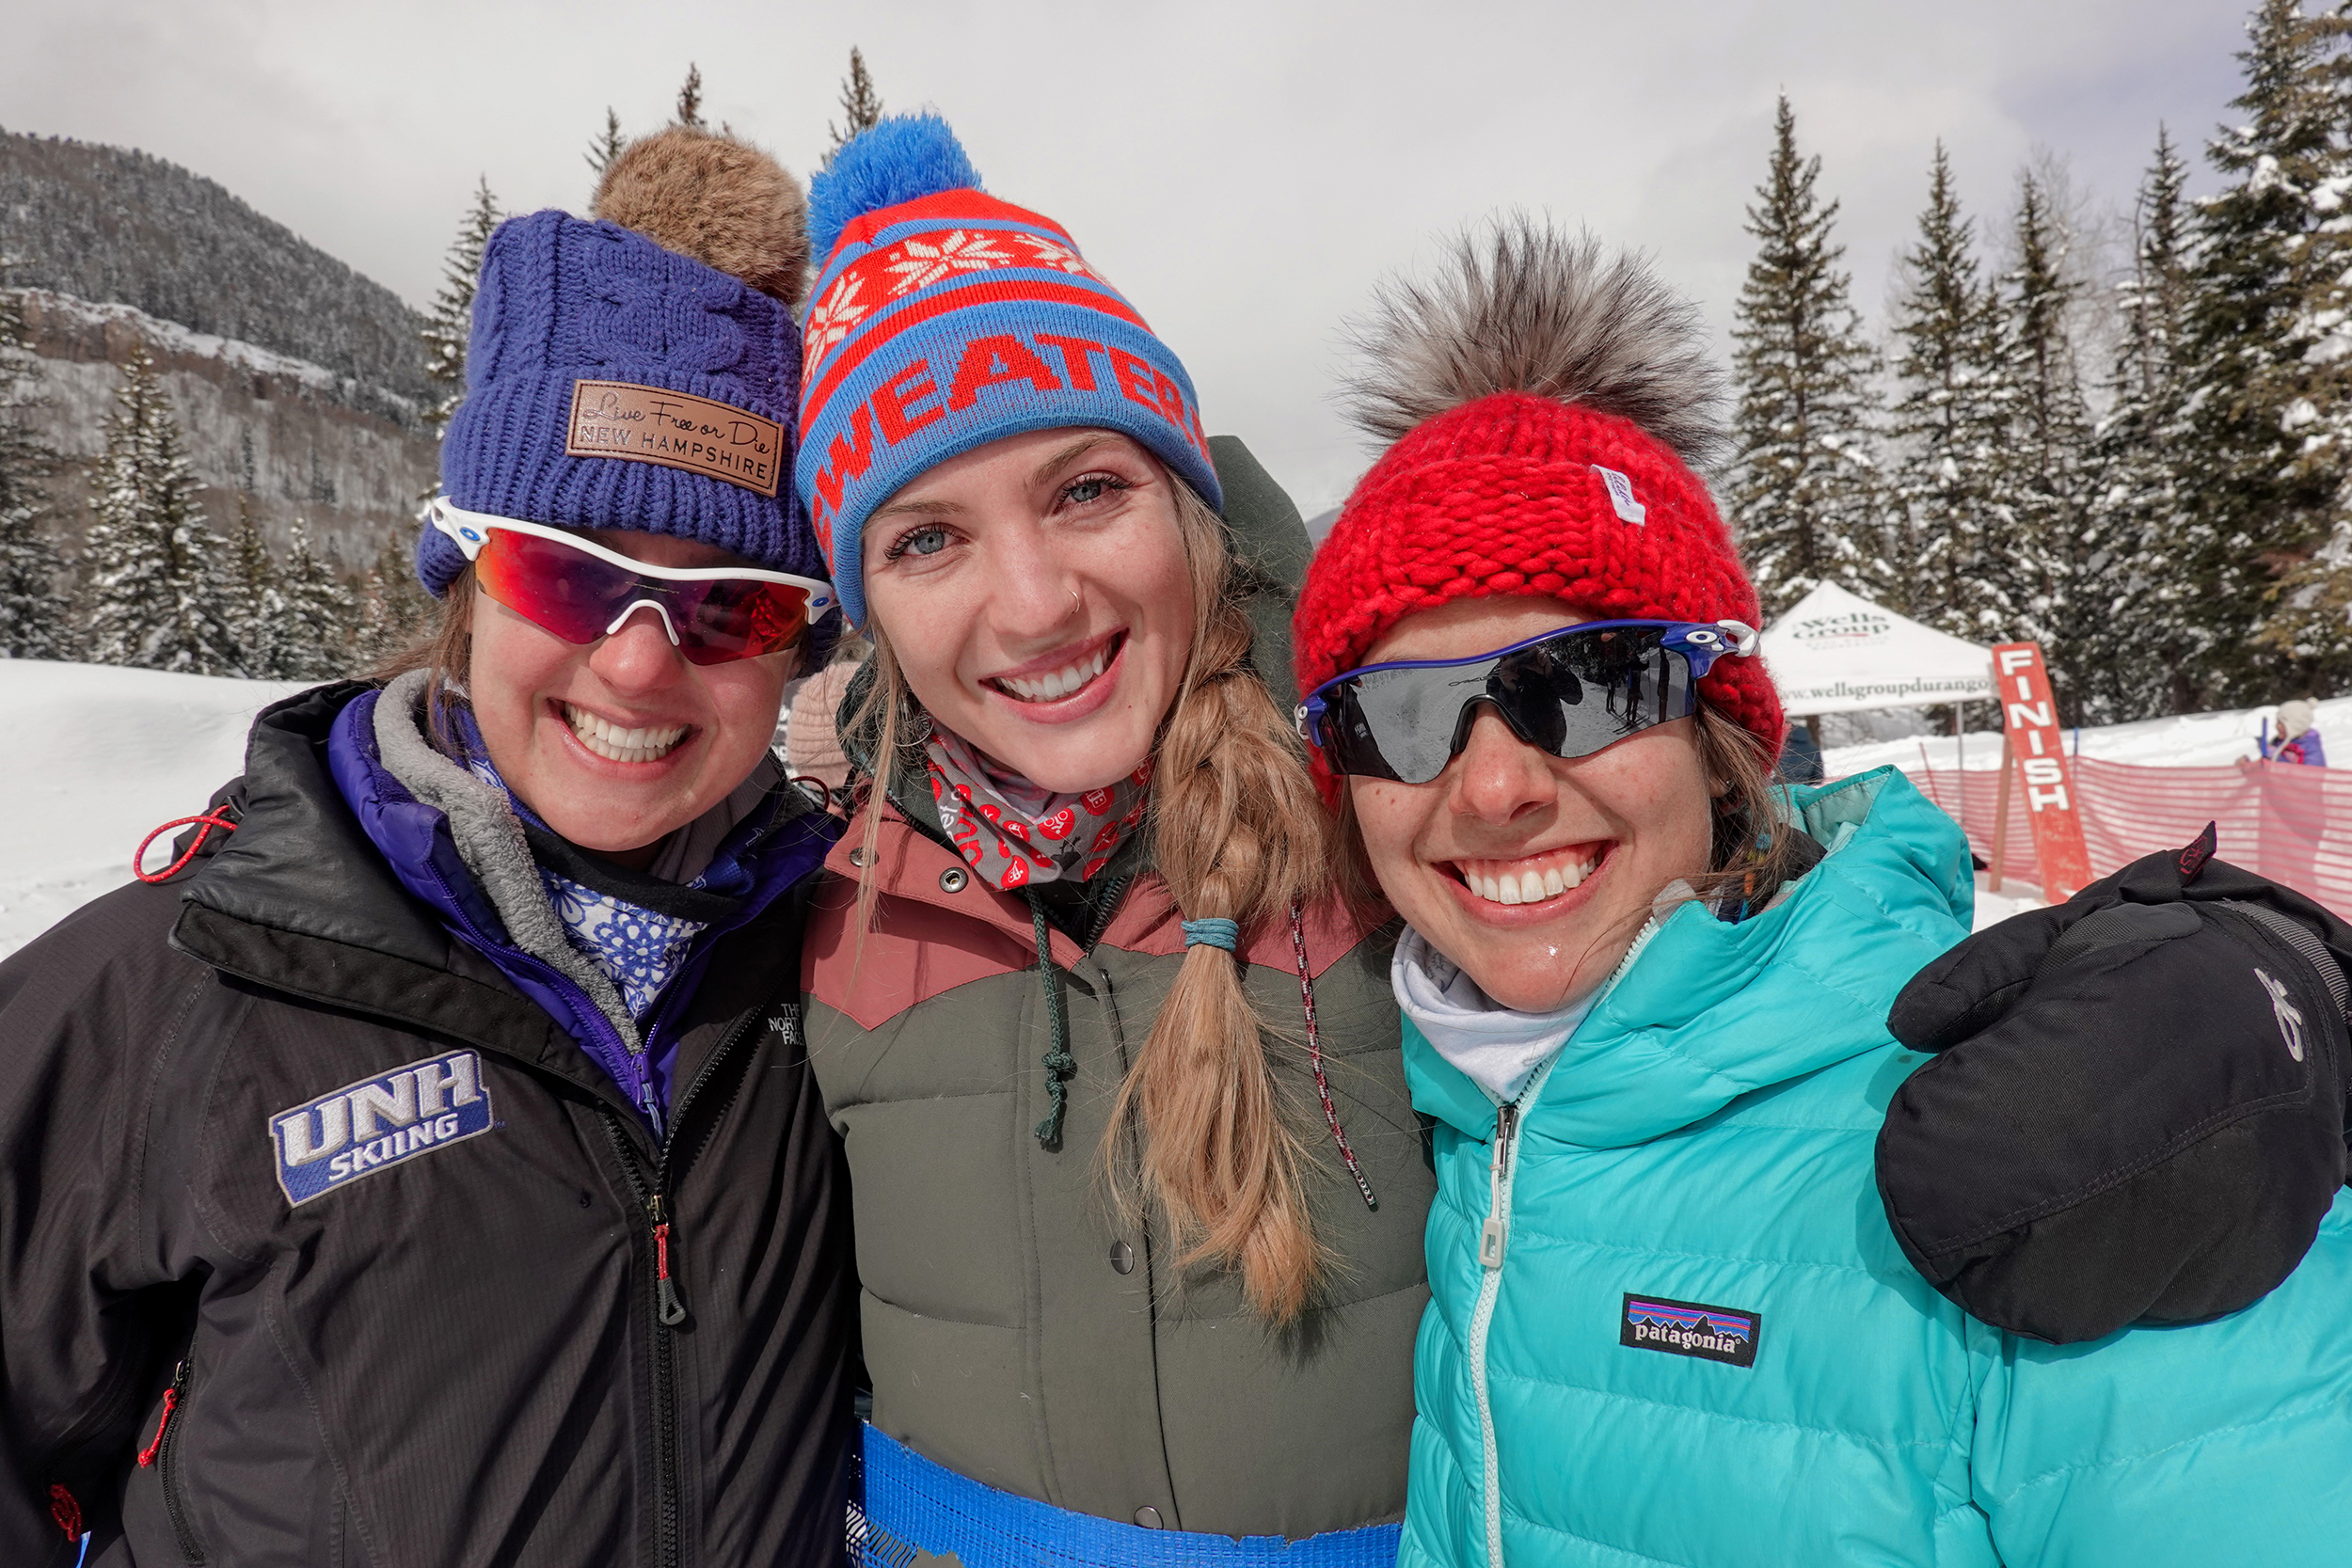 Our club - Our community collaborates as a non-profit club to operate the Durango Nordic Center and its ski programs.